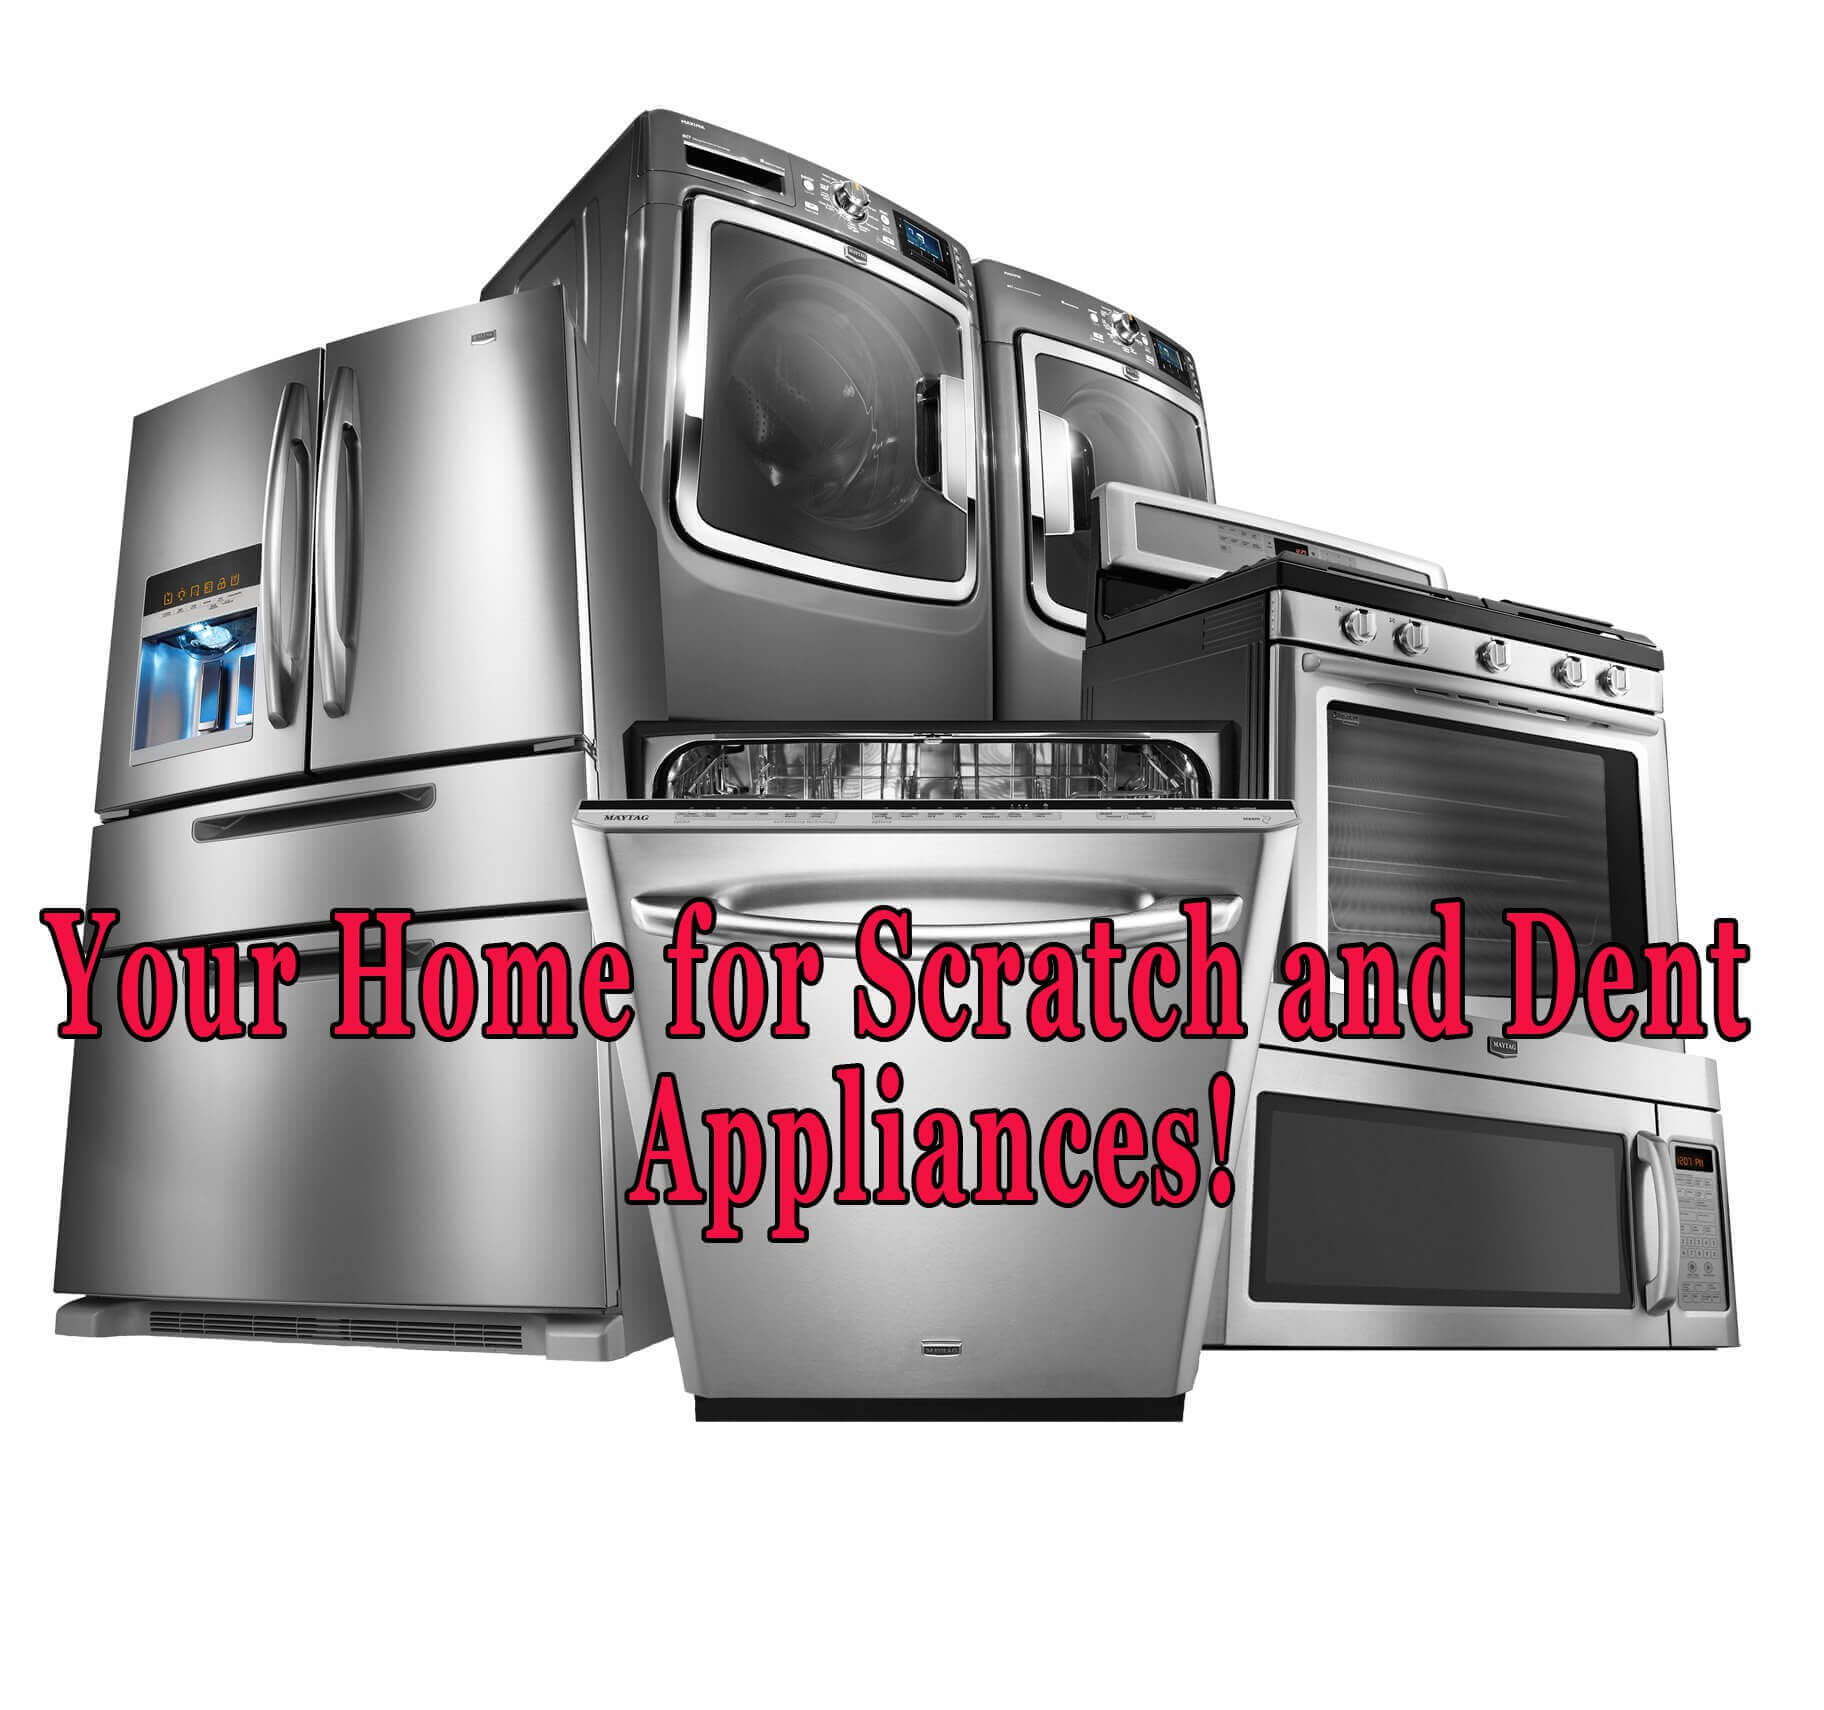 Scratch Dent Appliances